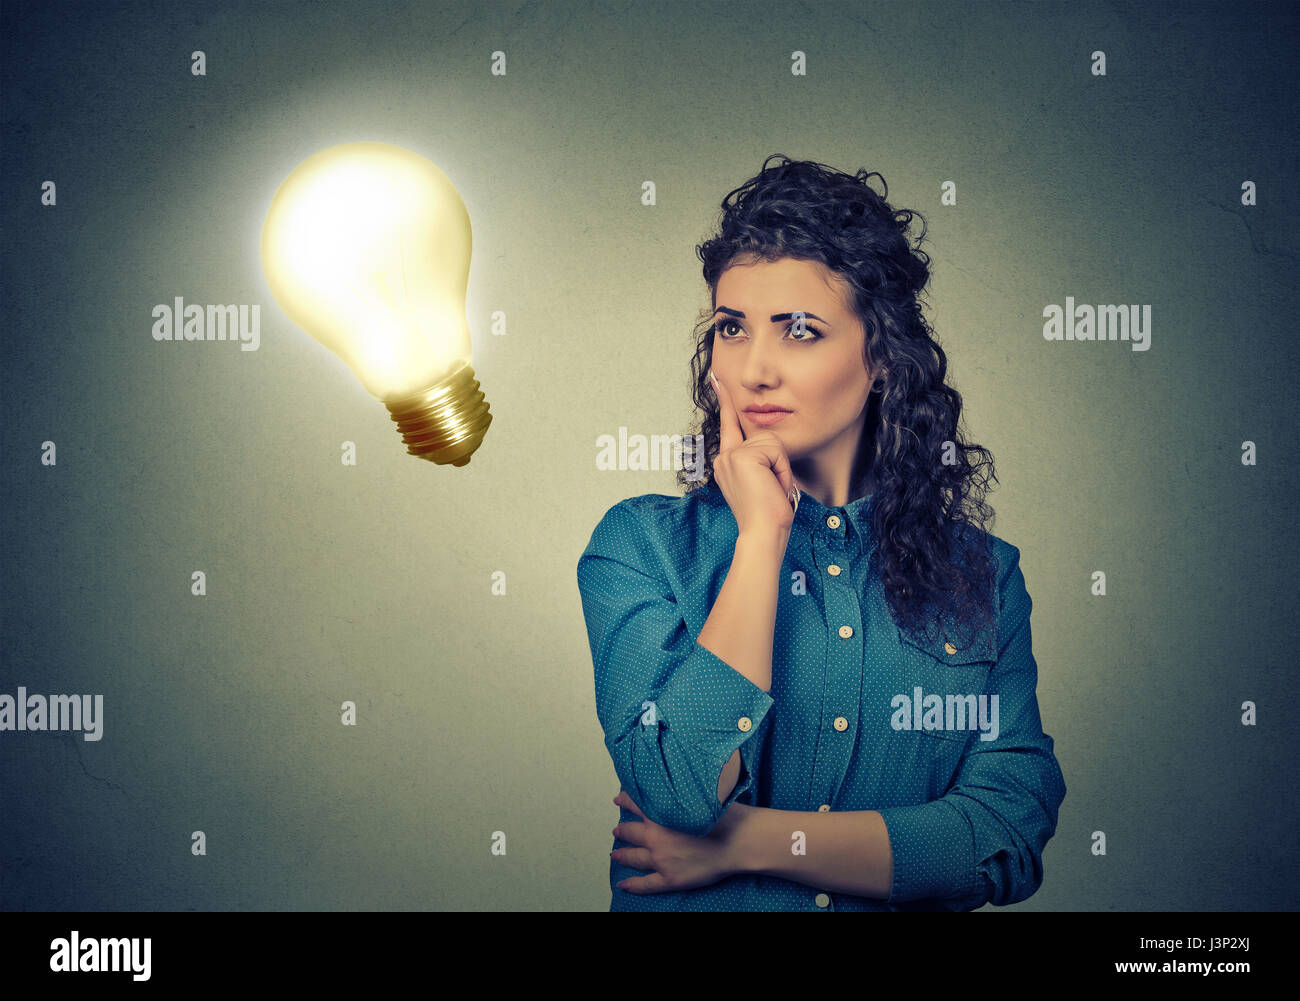 Closeup beautiful girl thinks looking up at bright light bulb isolated on gray wall background. Idea, education - Stock Image